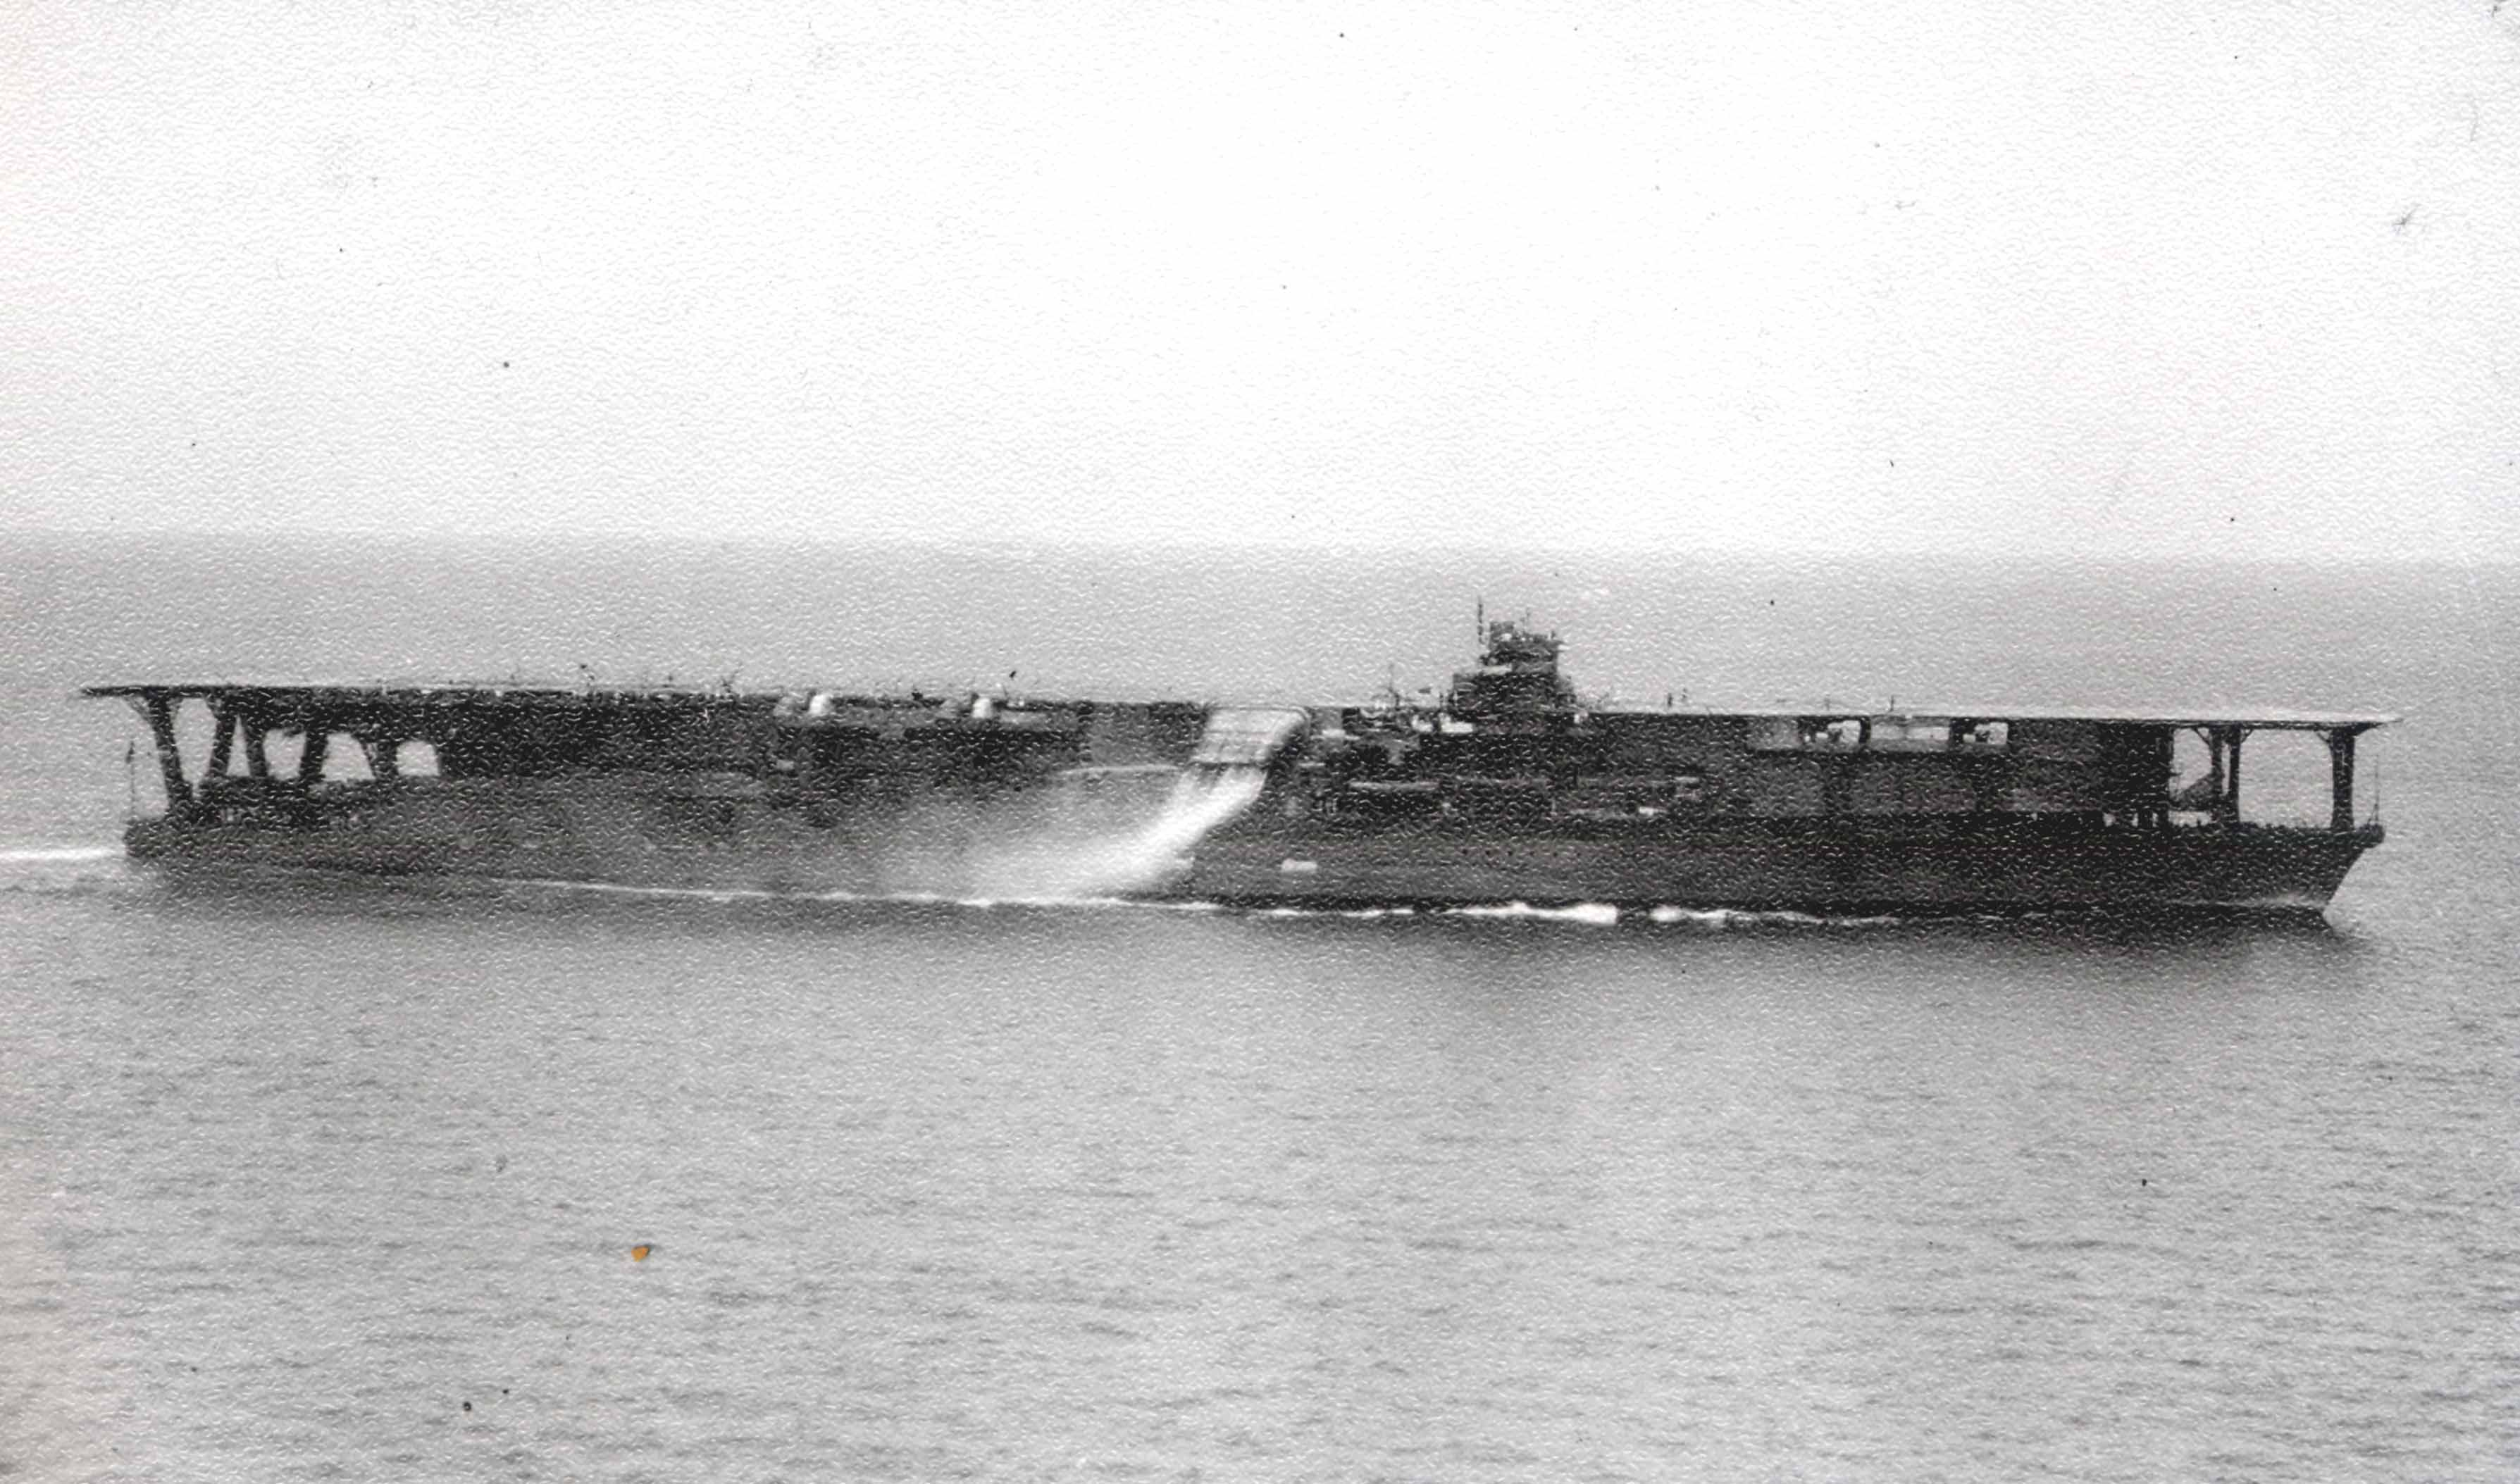 Japanese aircraft carrier Kaga - Wikipedia